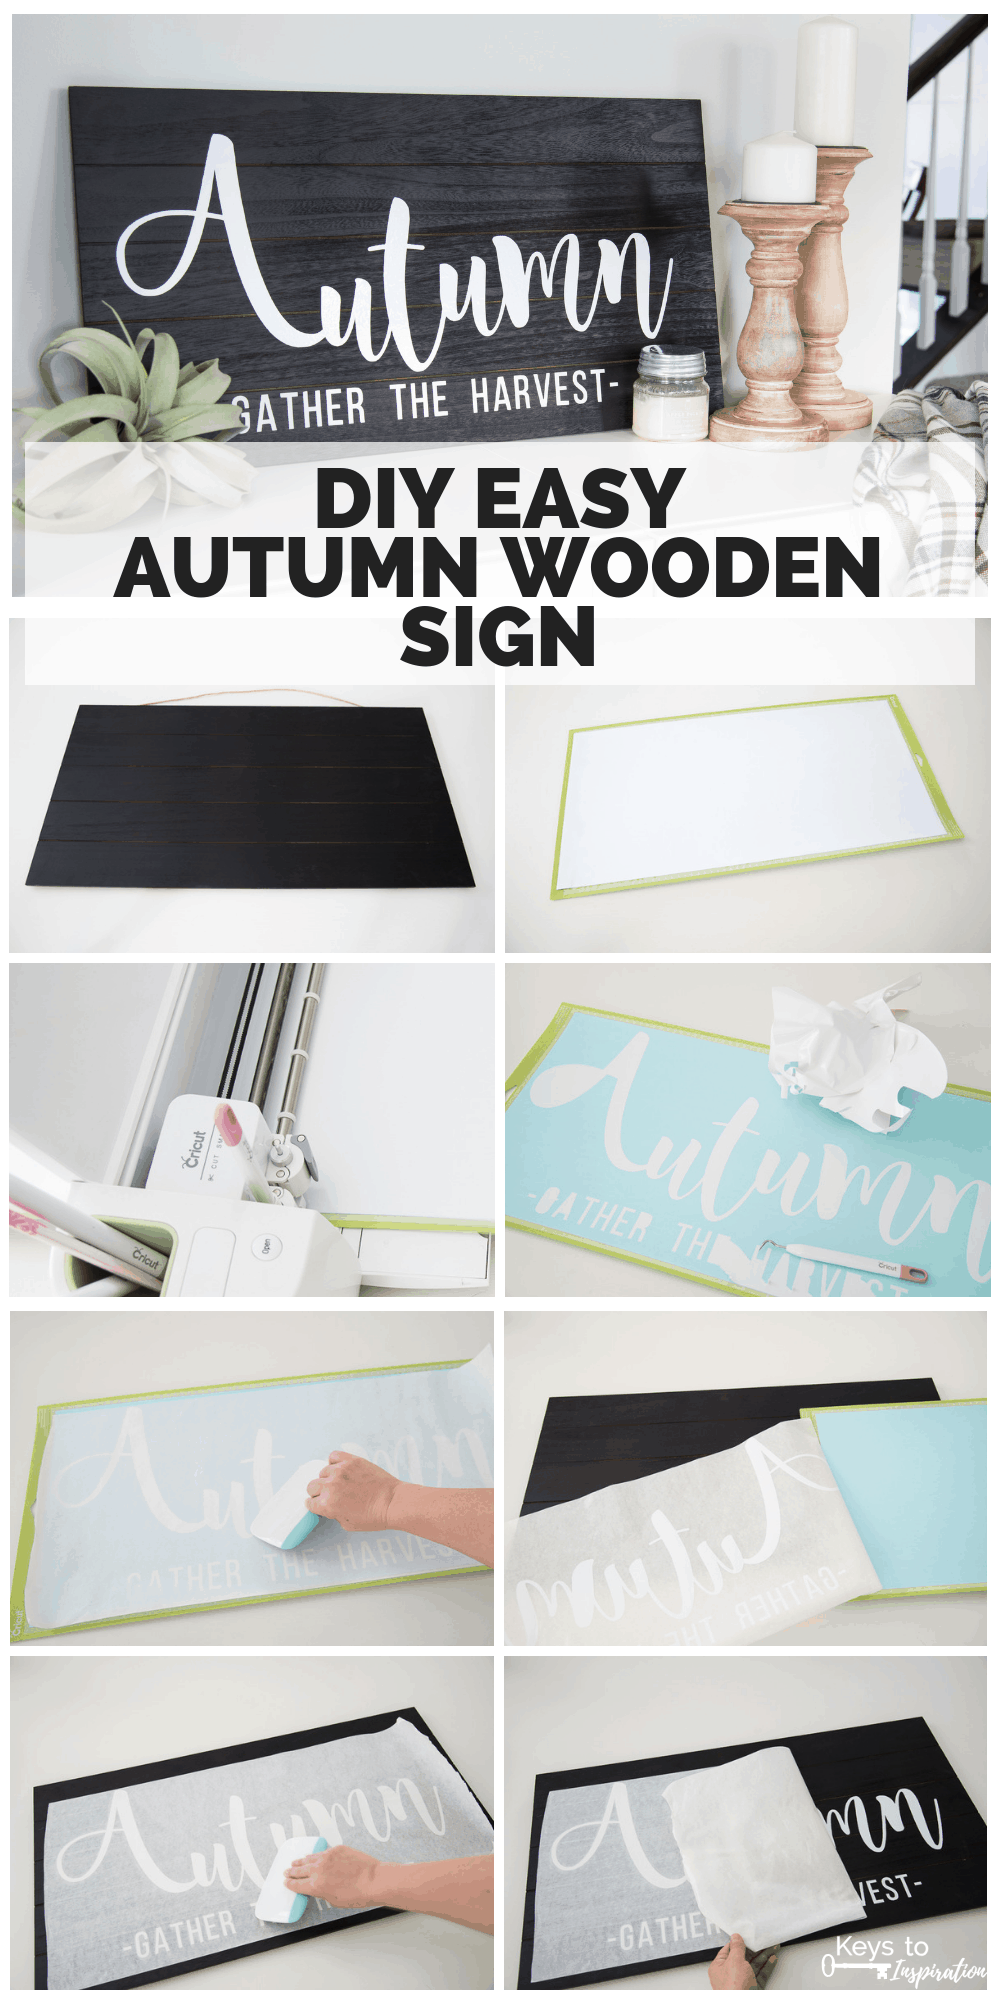 Step by step collage for making a DIY Autumn Wooden Sign using the Cricut Explore